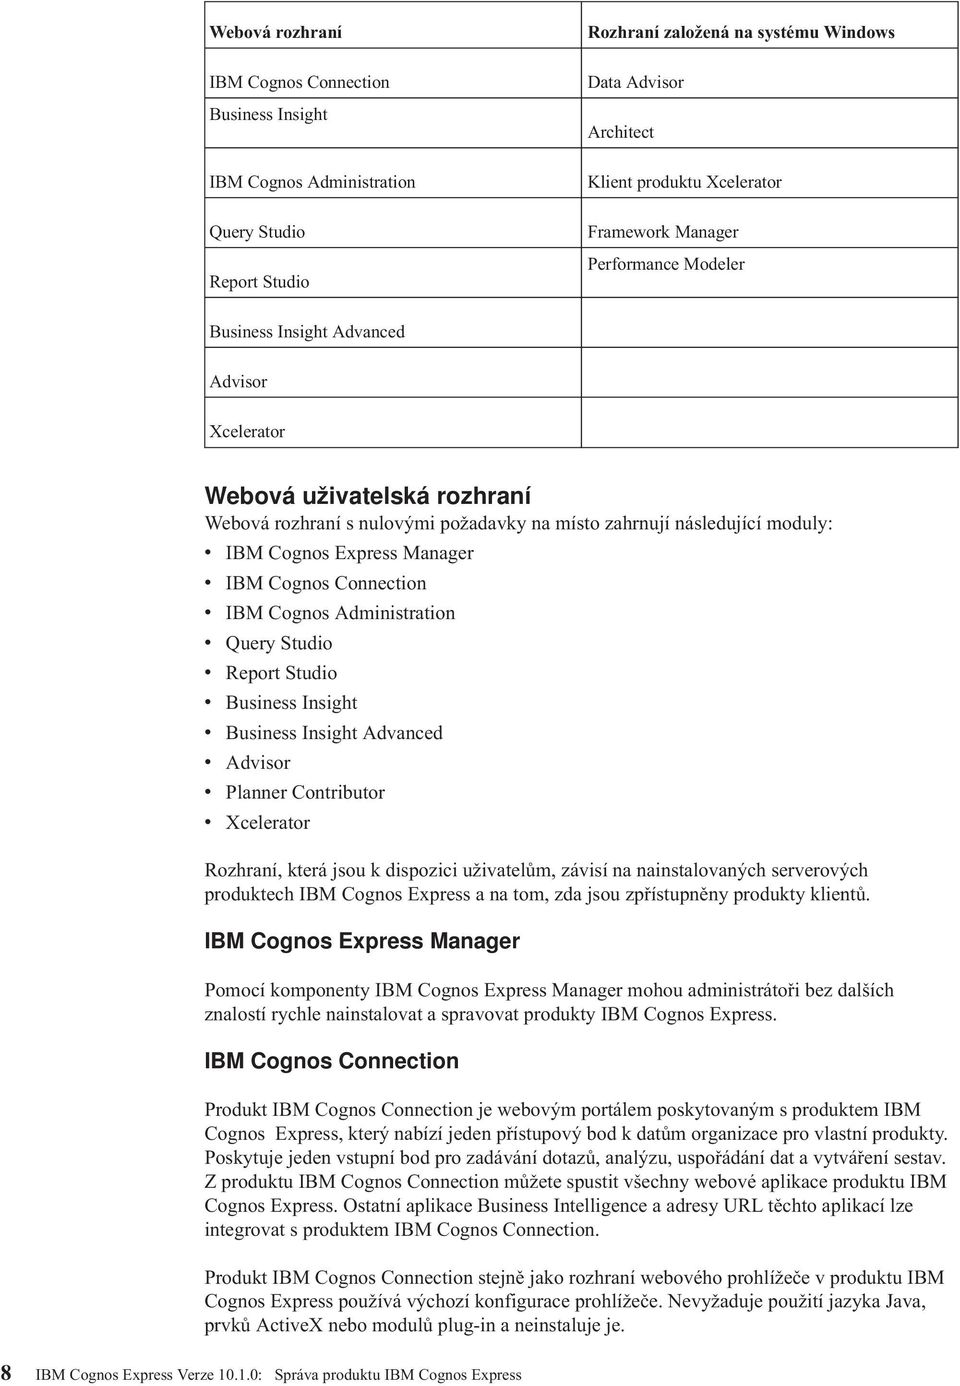 Express Manager v IBM Cognos Connection v IBM Cognos Administration v Query Studio v Report Studio v Business Insight v Business Insight Advanced v Advisor v Planner Contributor v Xcelerator